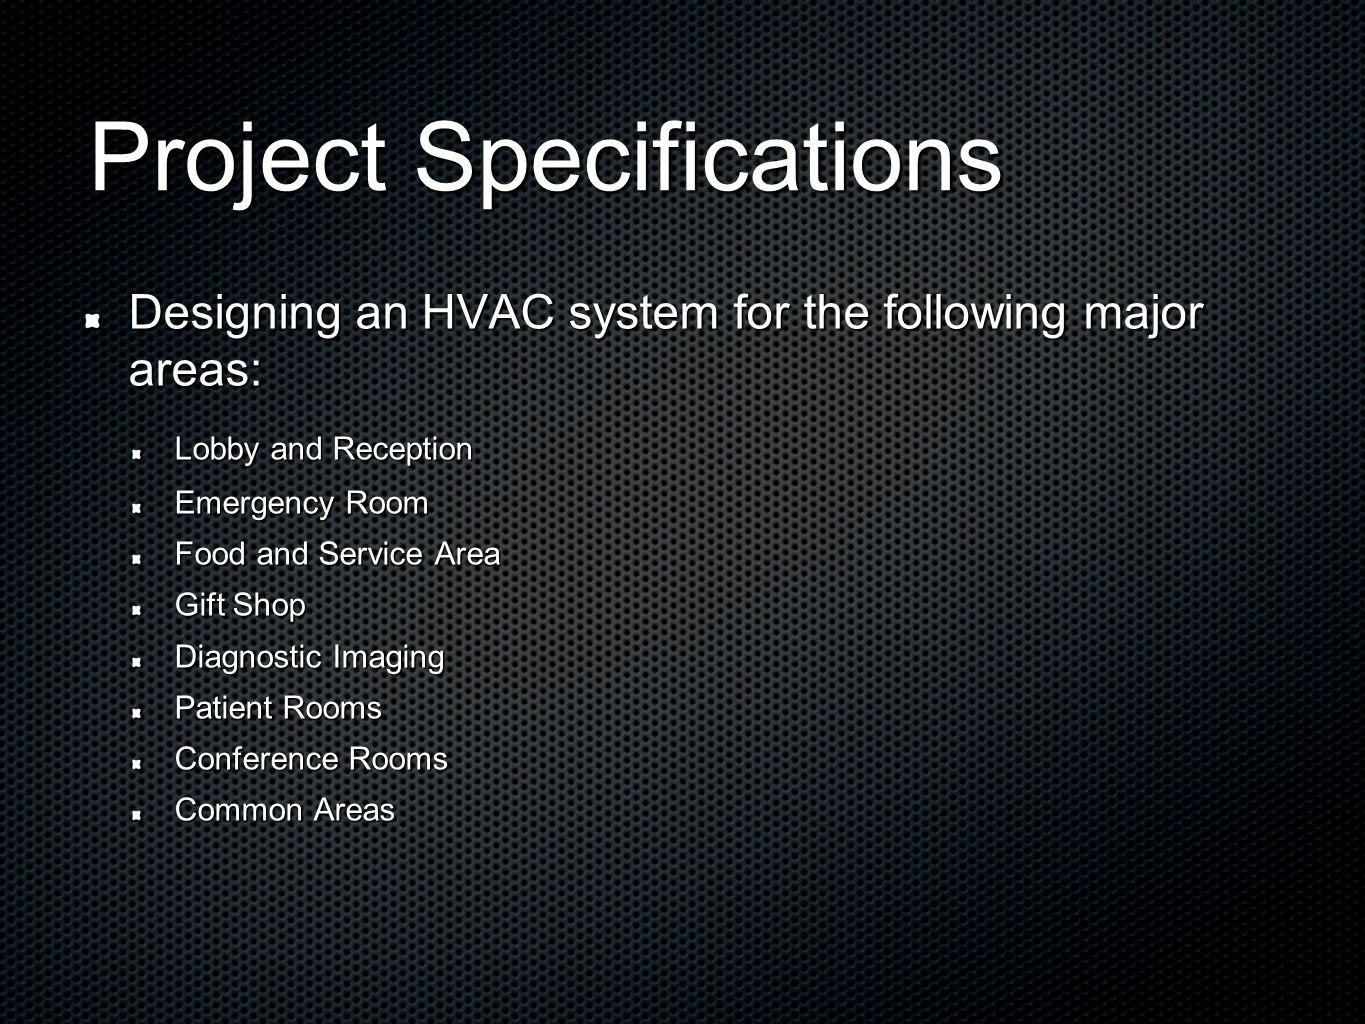 Project Specifications Designing an HVAC system for the following major areas: Lobby and Reception Emergency Room Food and Service Area Gift Shop Diagnostic Imaging Patient Rooms Conference Rooms Common Areas